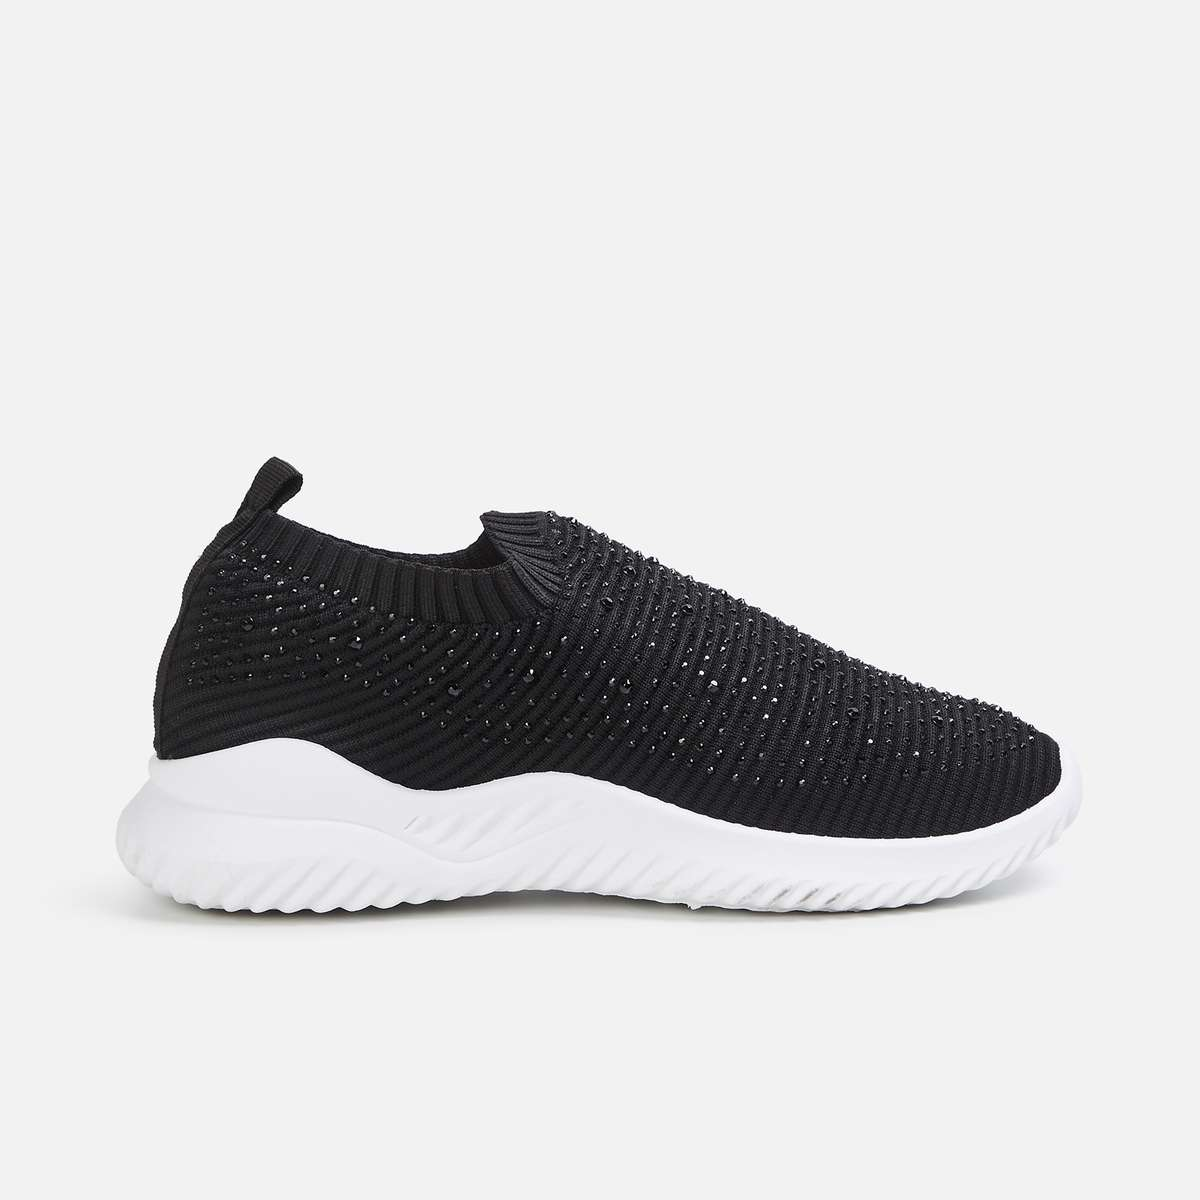 3.GINGER Women Textured Sock-Knit Shoes